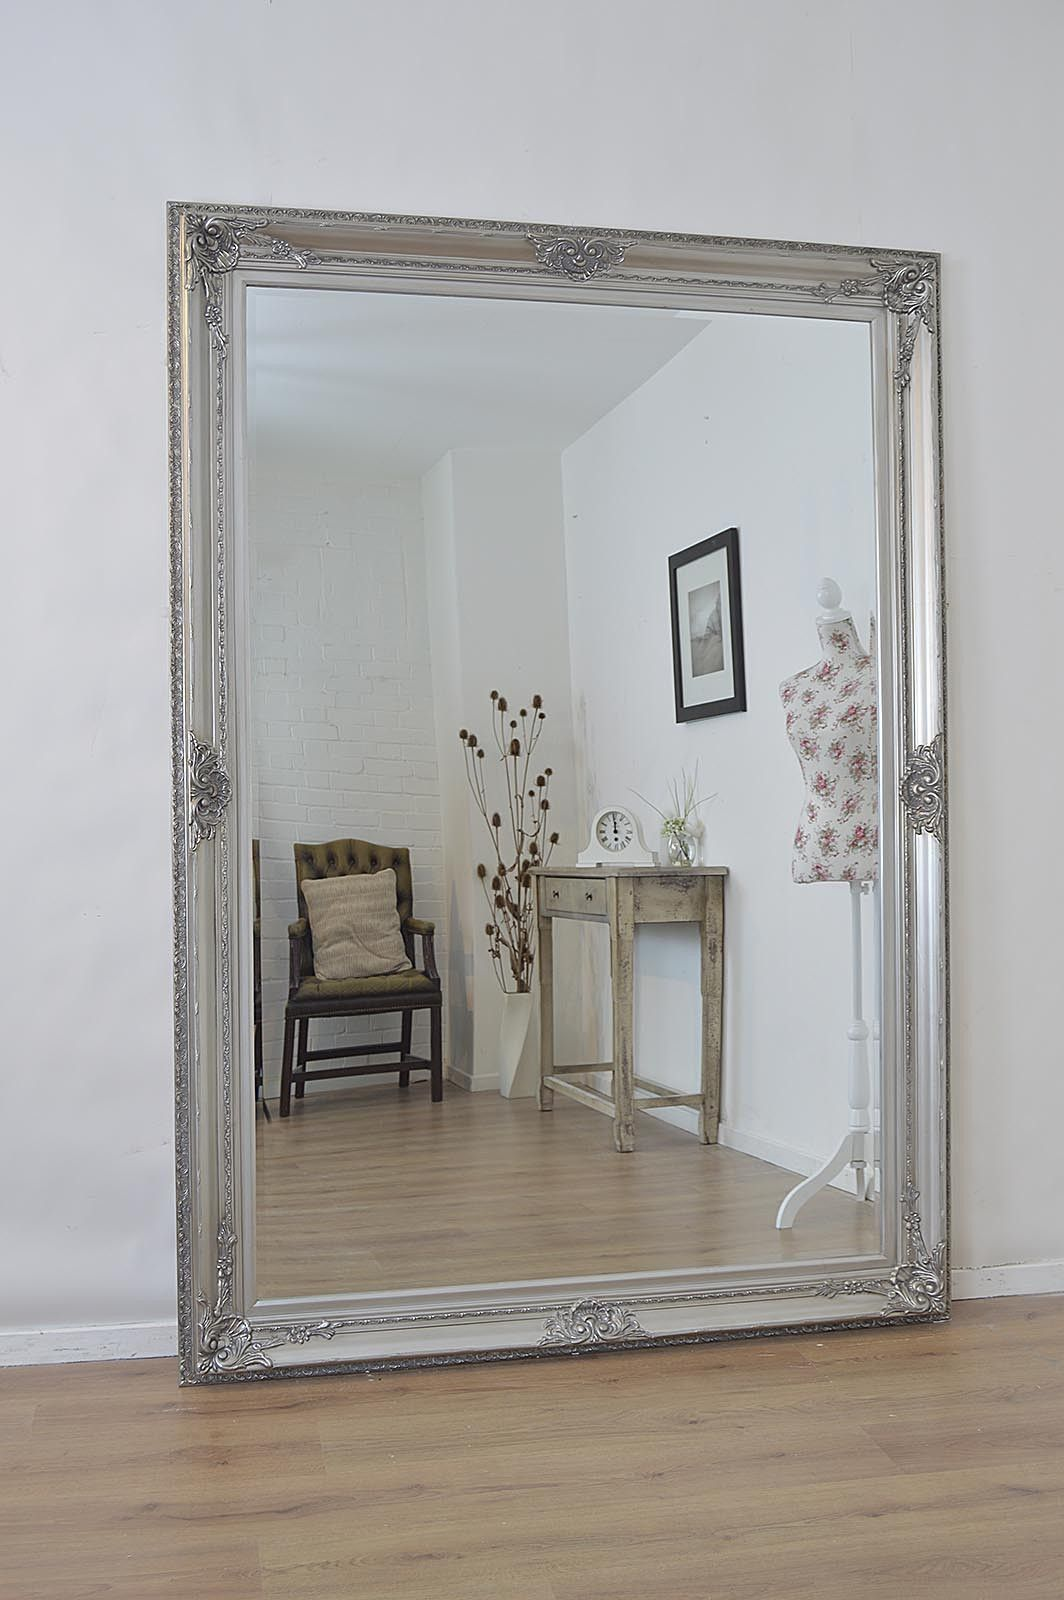 Diy Big Wall Mirrors Extra Large Wall Mirrors Simple Wall Decor Large Framed Mirrors